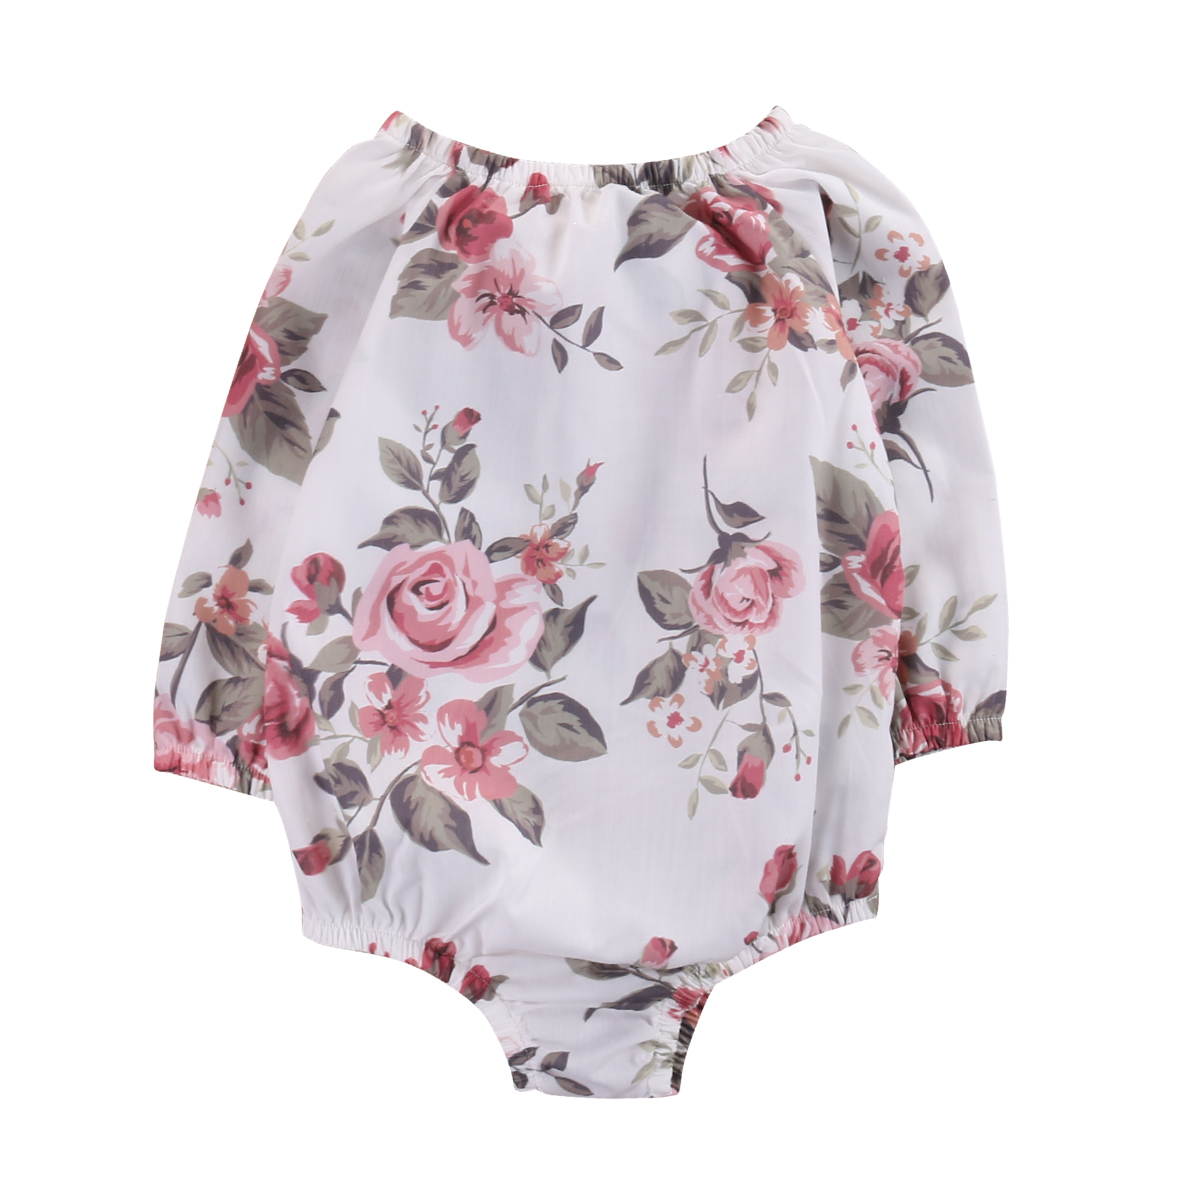 d8f9e5591894 0-18M Lovely Floral Romper baby clothes Newborn Baby Girls Cotton long  sleeve Romper Playsuit